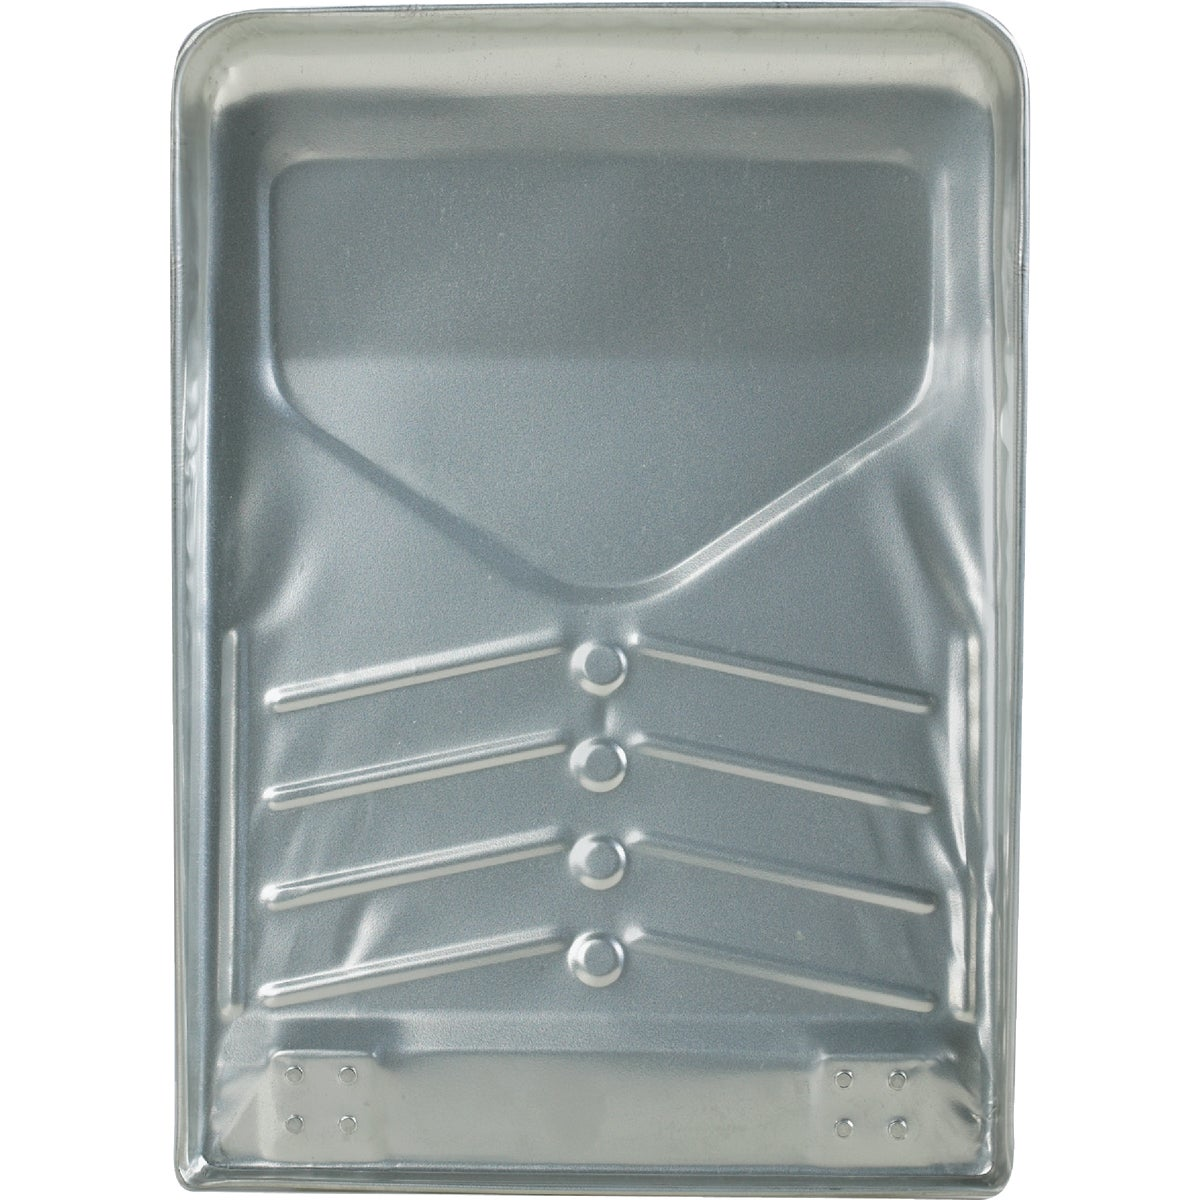 "9"" STANDARD METAL TRAY - 50265 by Shur Line"